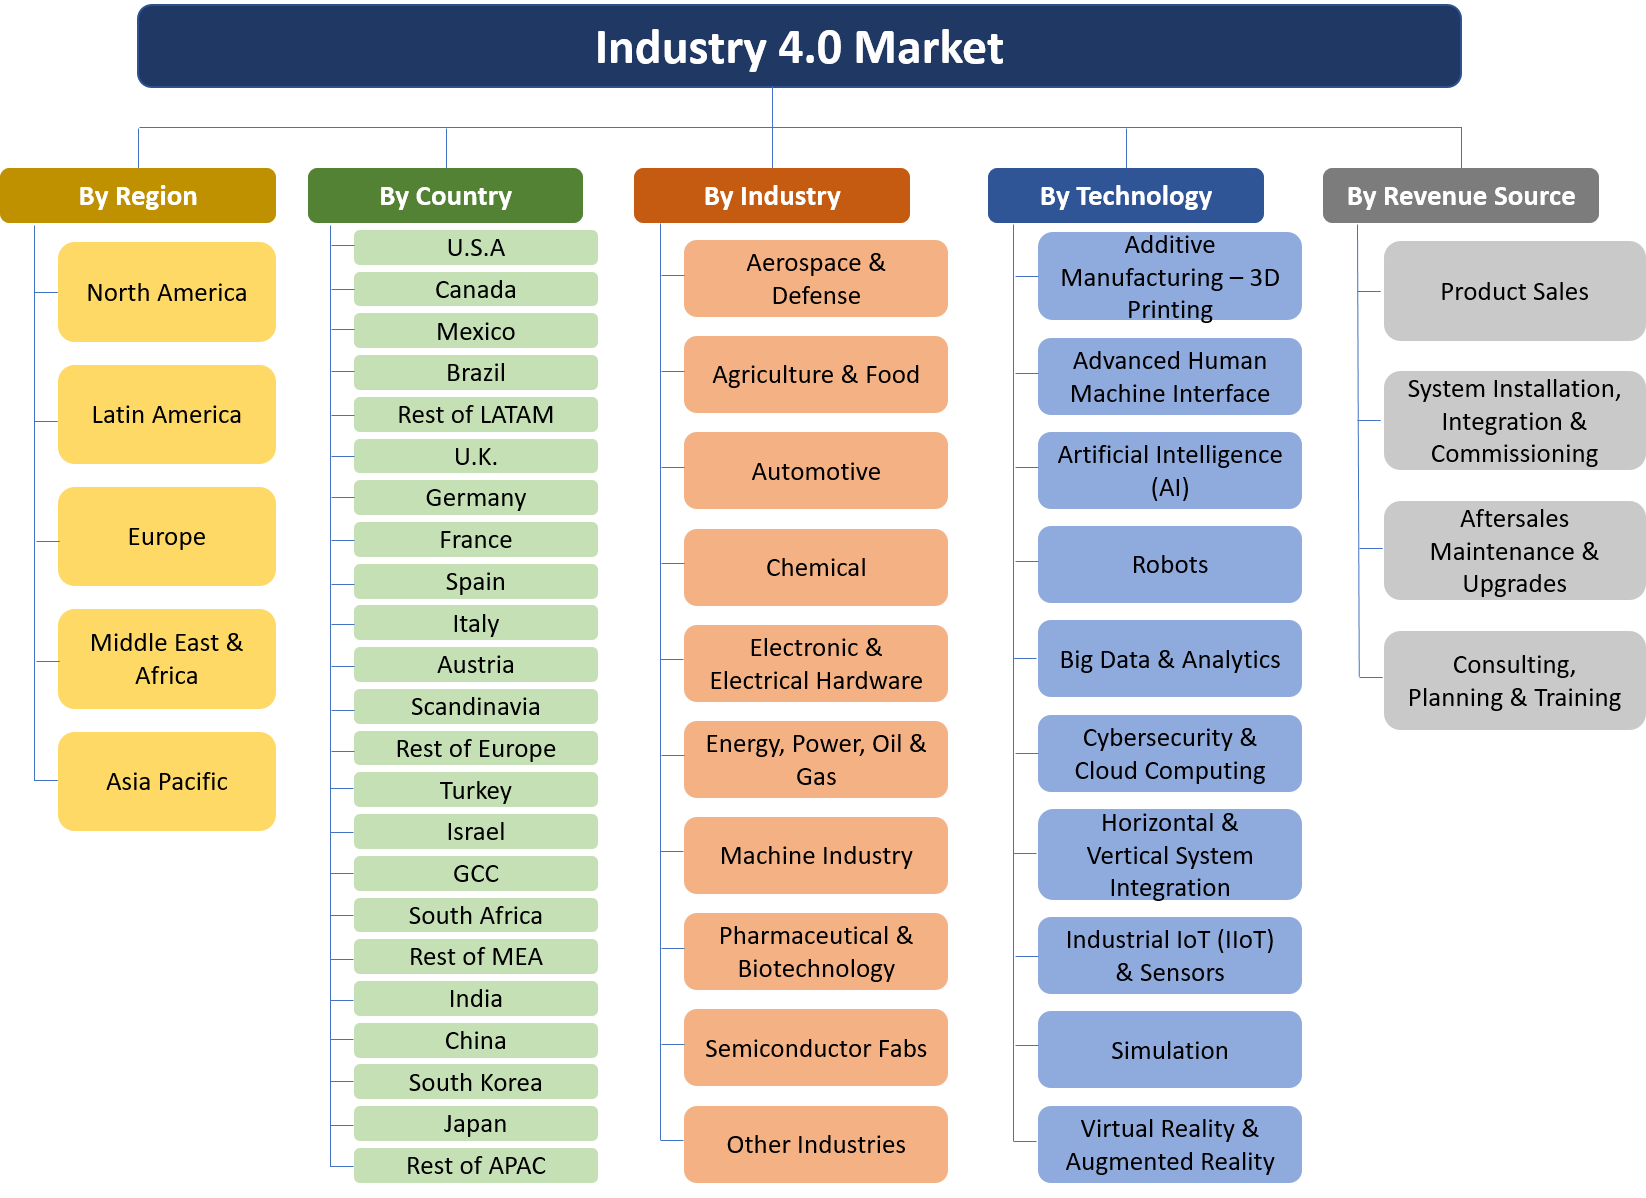 Industry 4.0 Market & Technologies Report 188 Submarkets Granulation Vectors